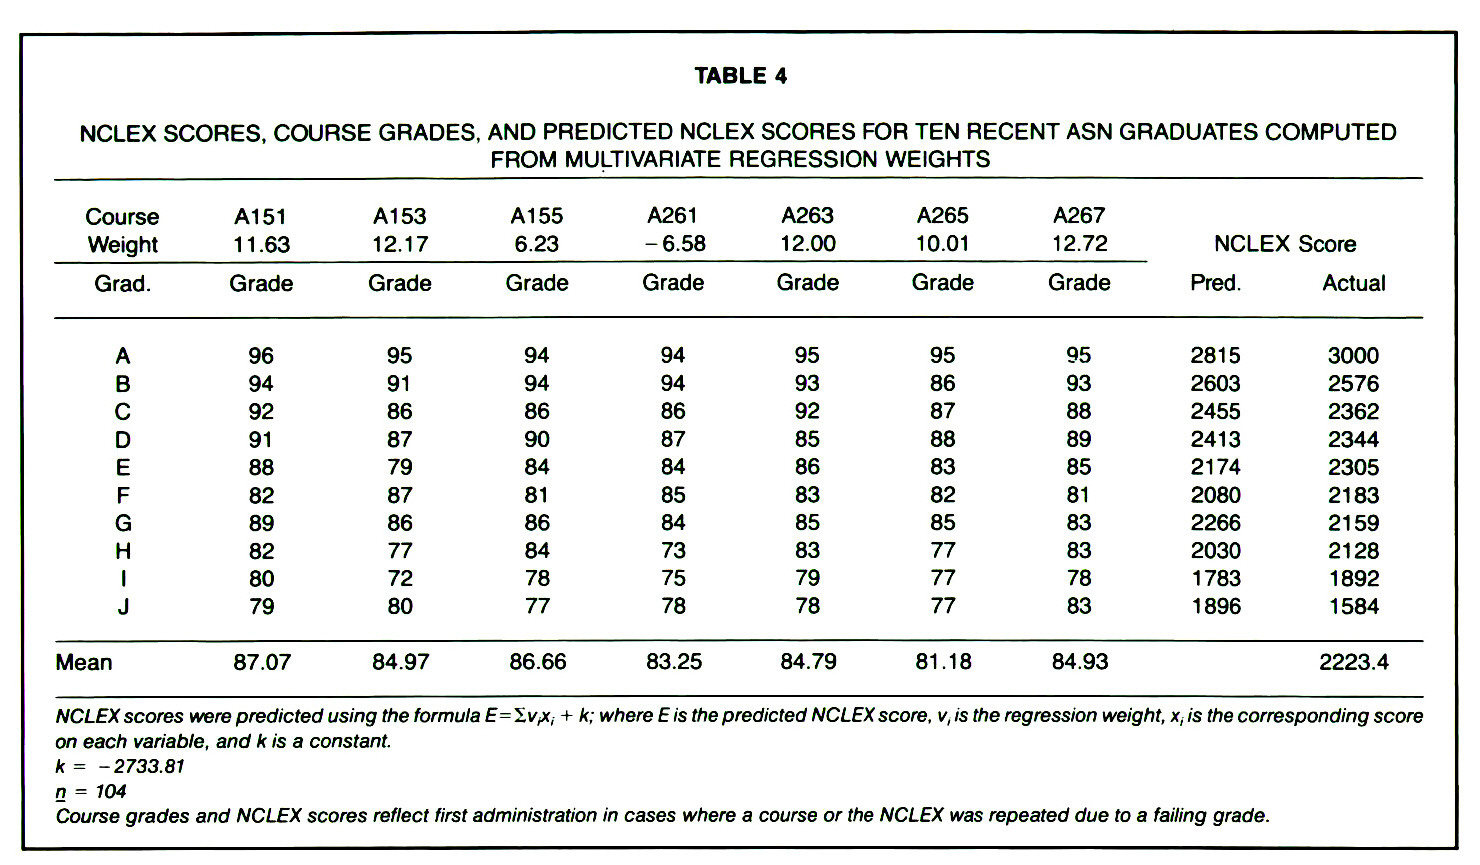 TABLE 4NCLEX SCORES, COURSE GRADES, AND PREDICTED NCLEX SCORES FOR TEN RECENT ASN GRADUATES COMPUTED FROM MULTIVARIATE REGRESSION WEIGHTS